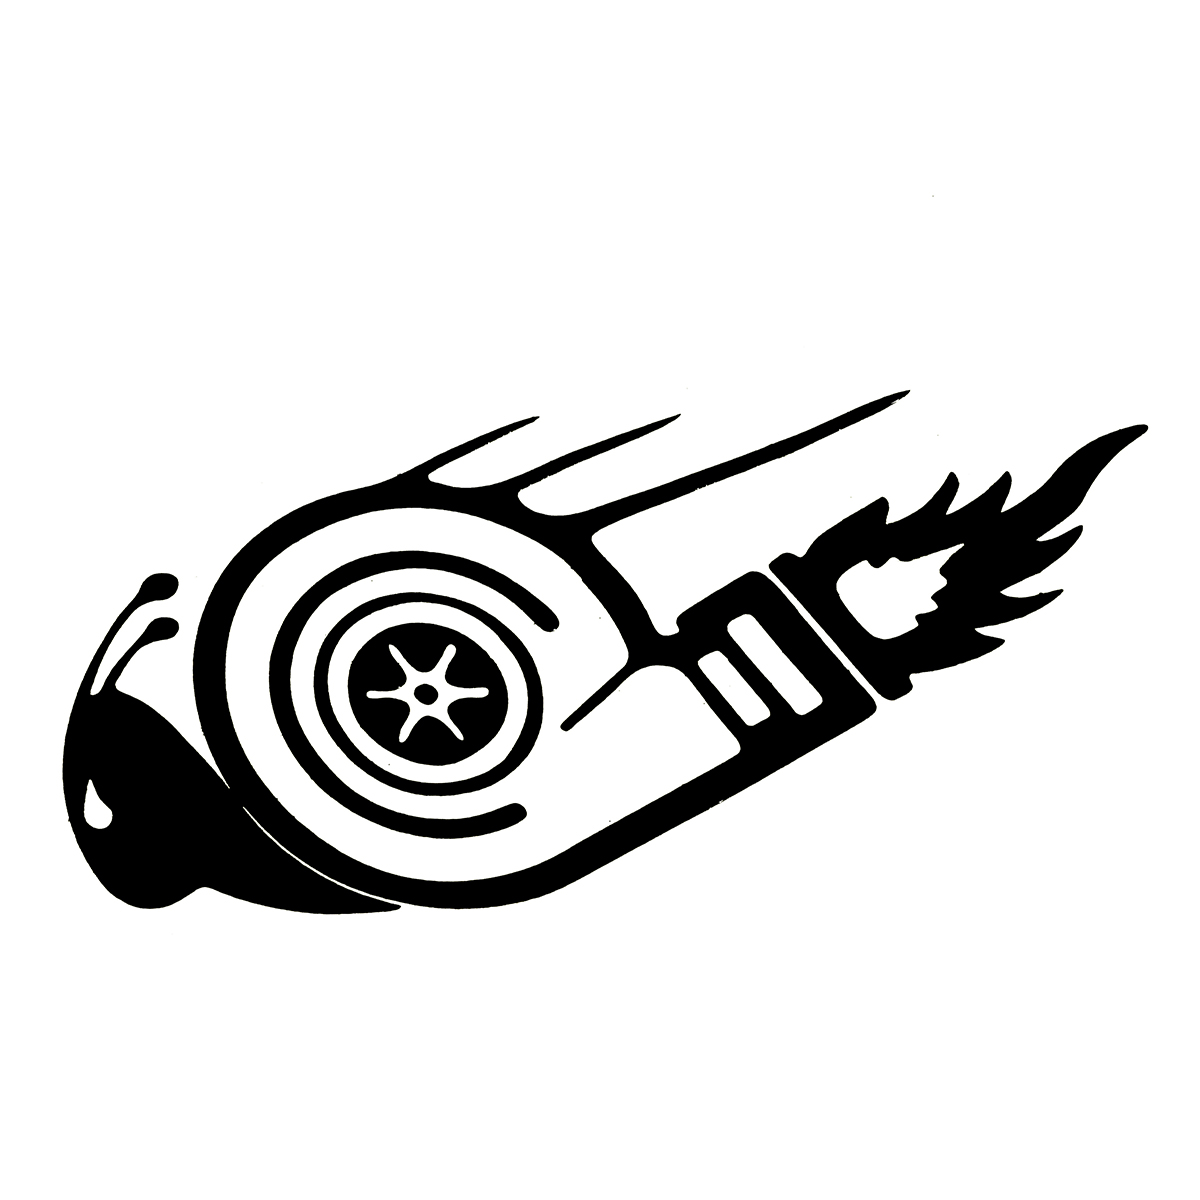 15 7 5cm Stylish Turbo Snail Car Stickers Dub Drift Race